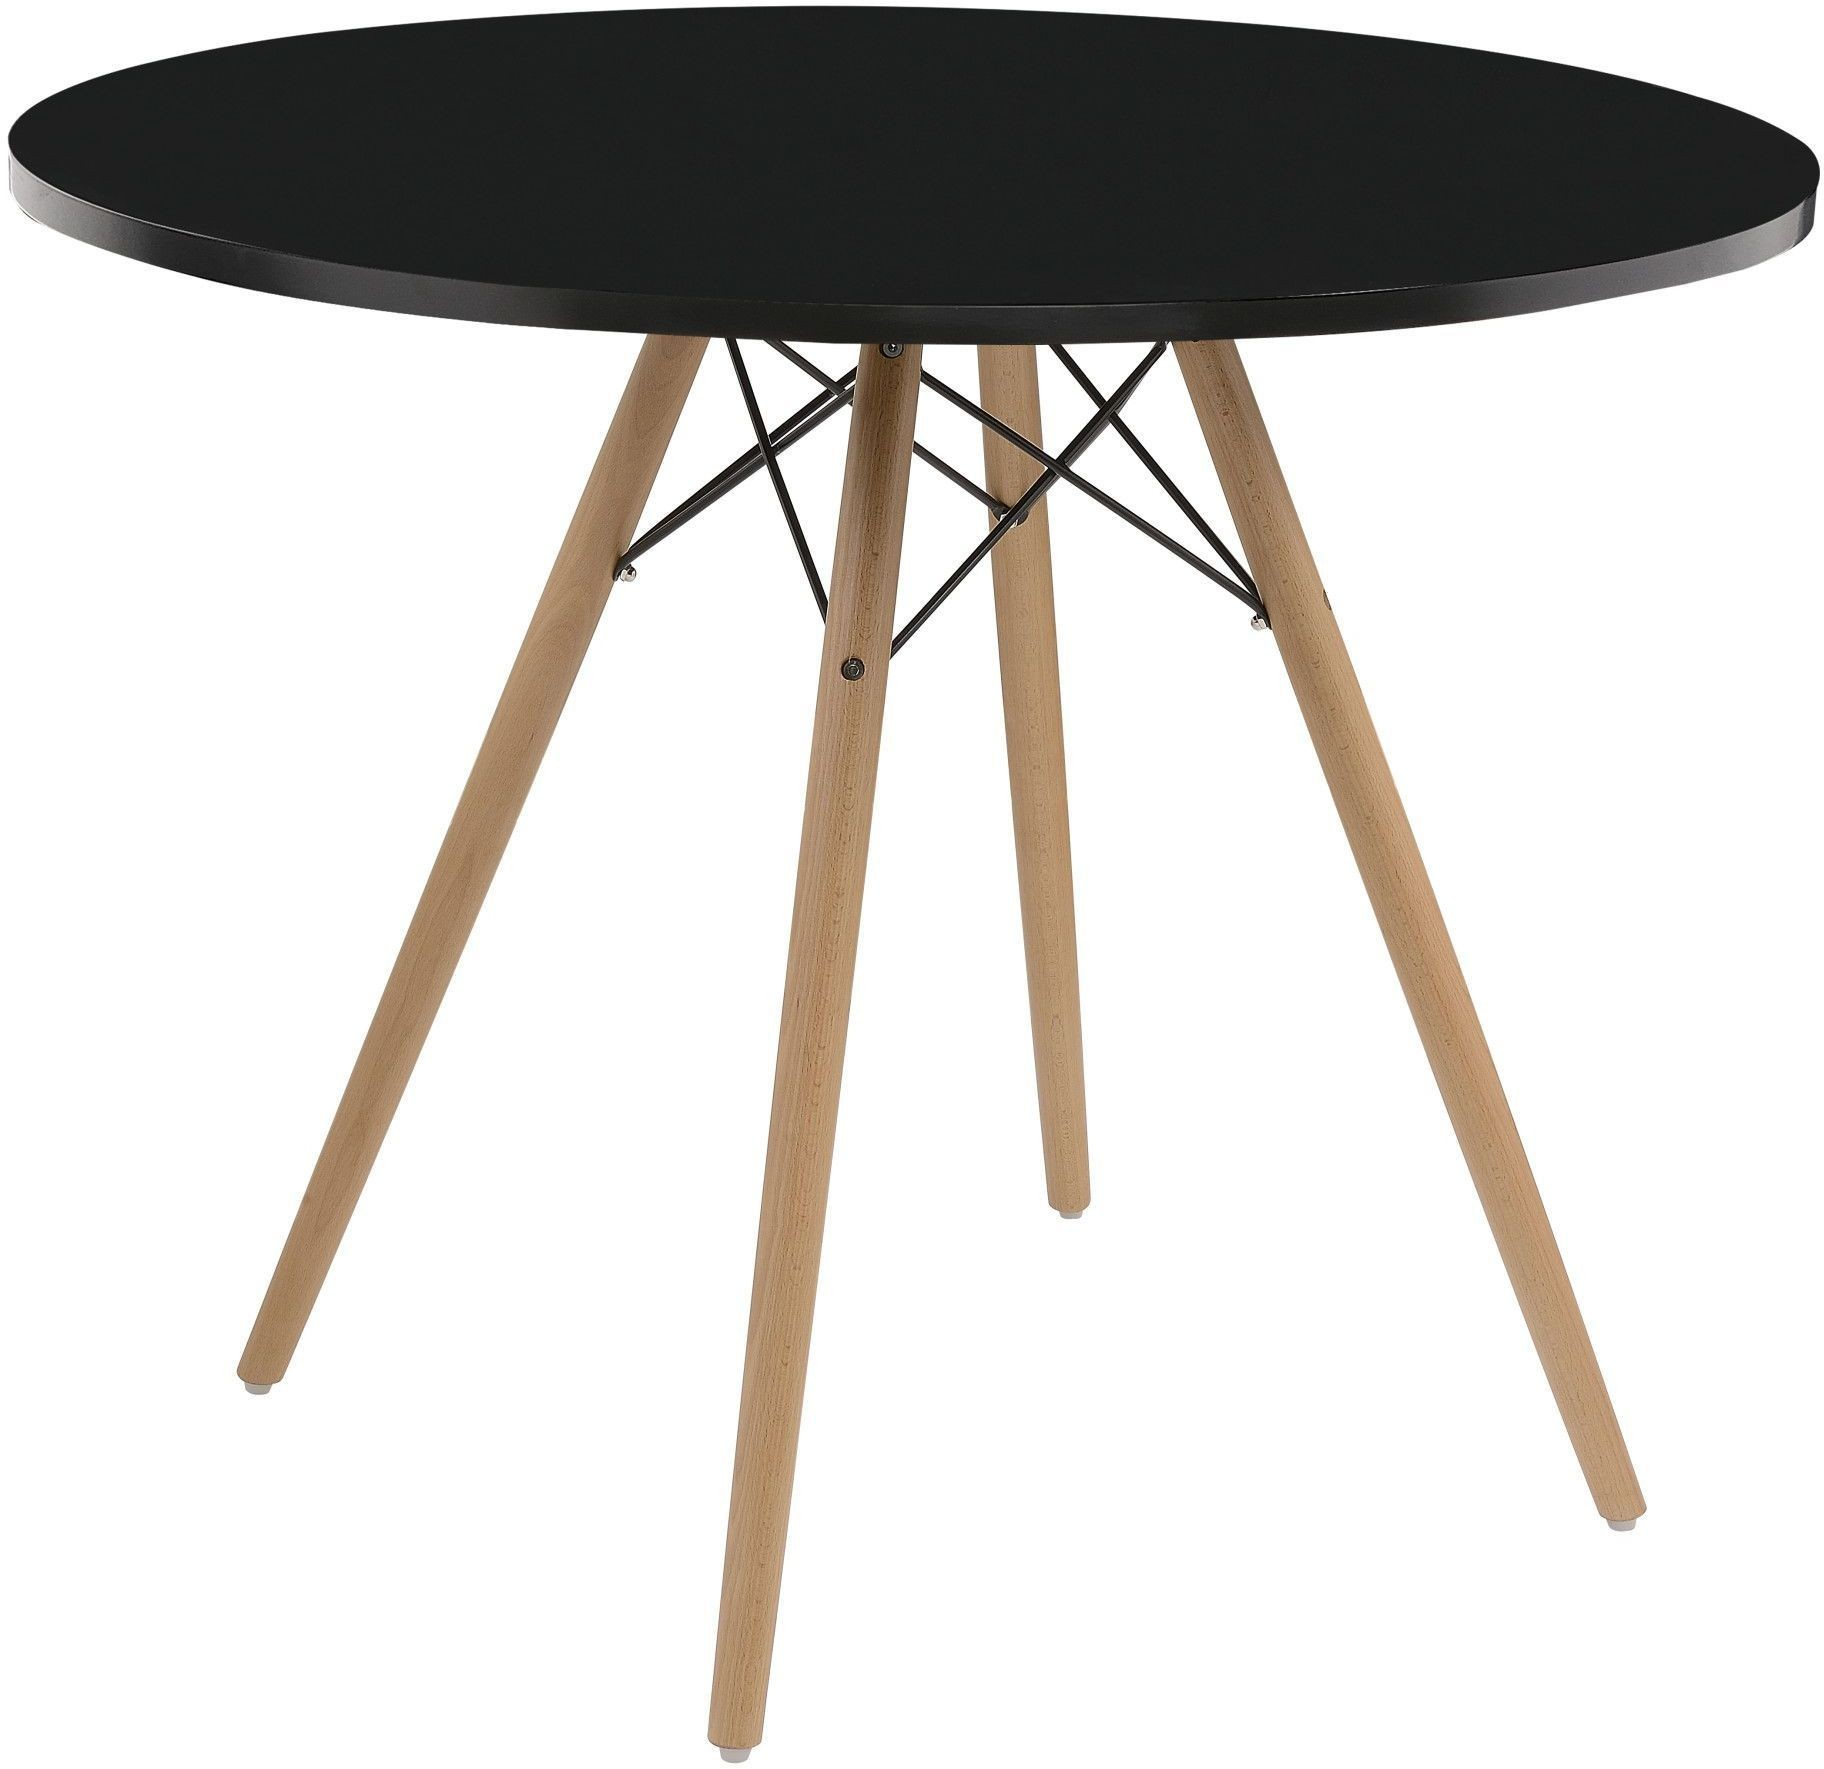 annette black 40 round dining table from emerald home coleman furniture. Black Bedroom Furniture Sets. Home Design Ideas